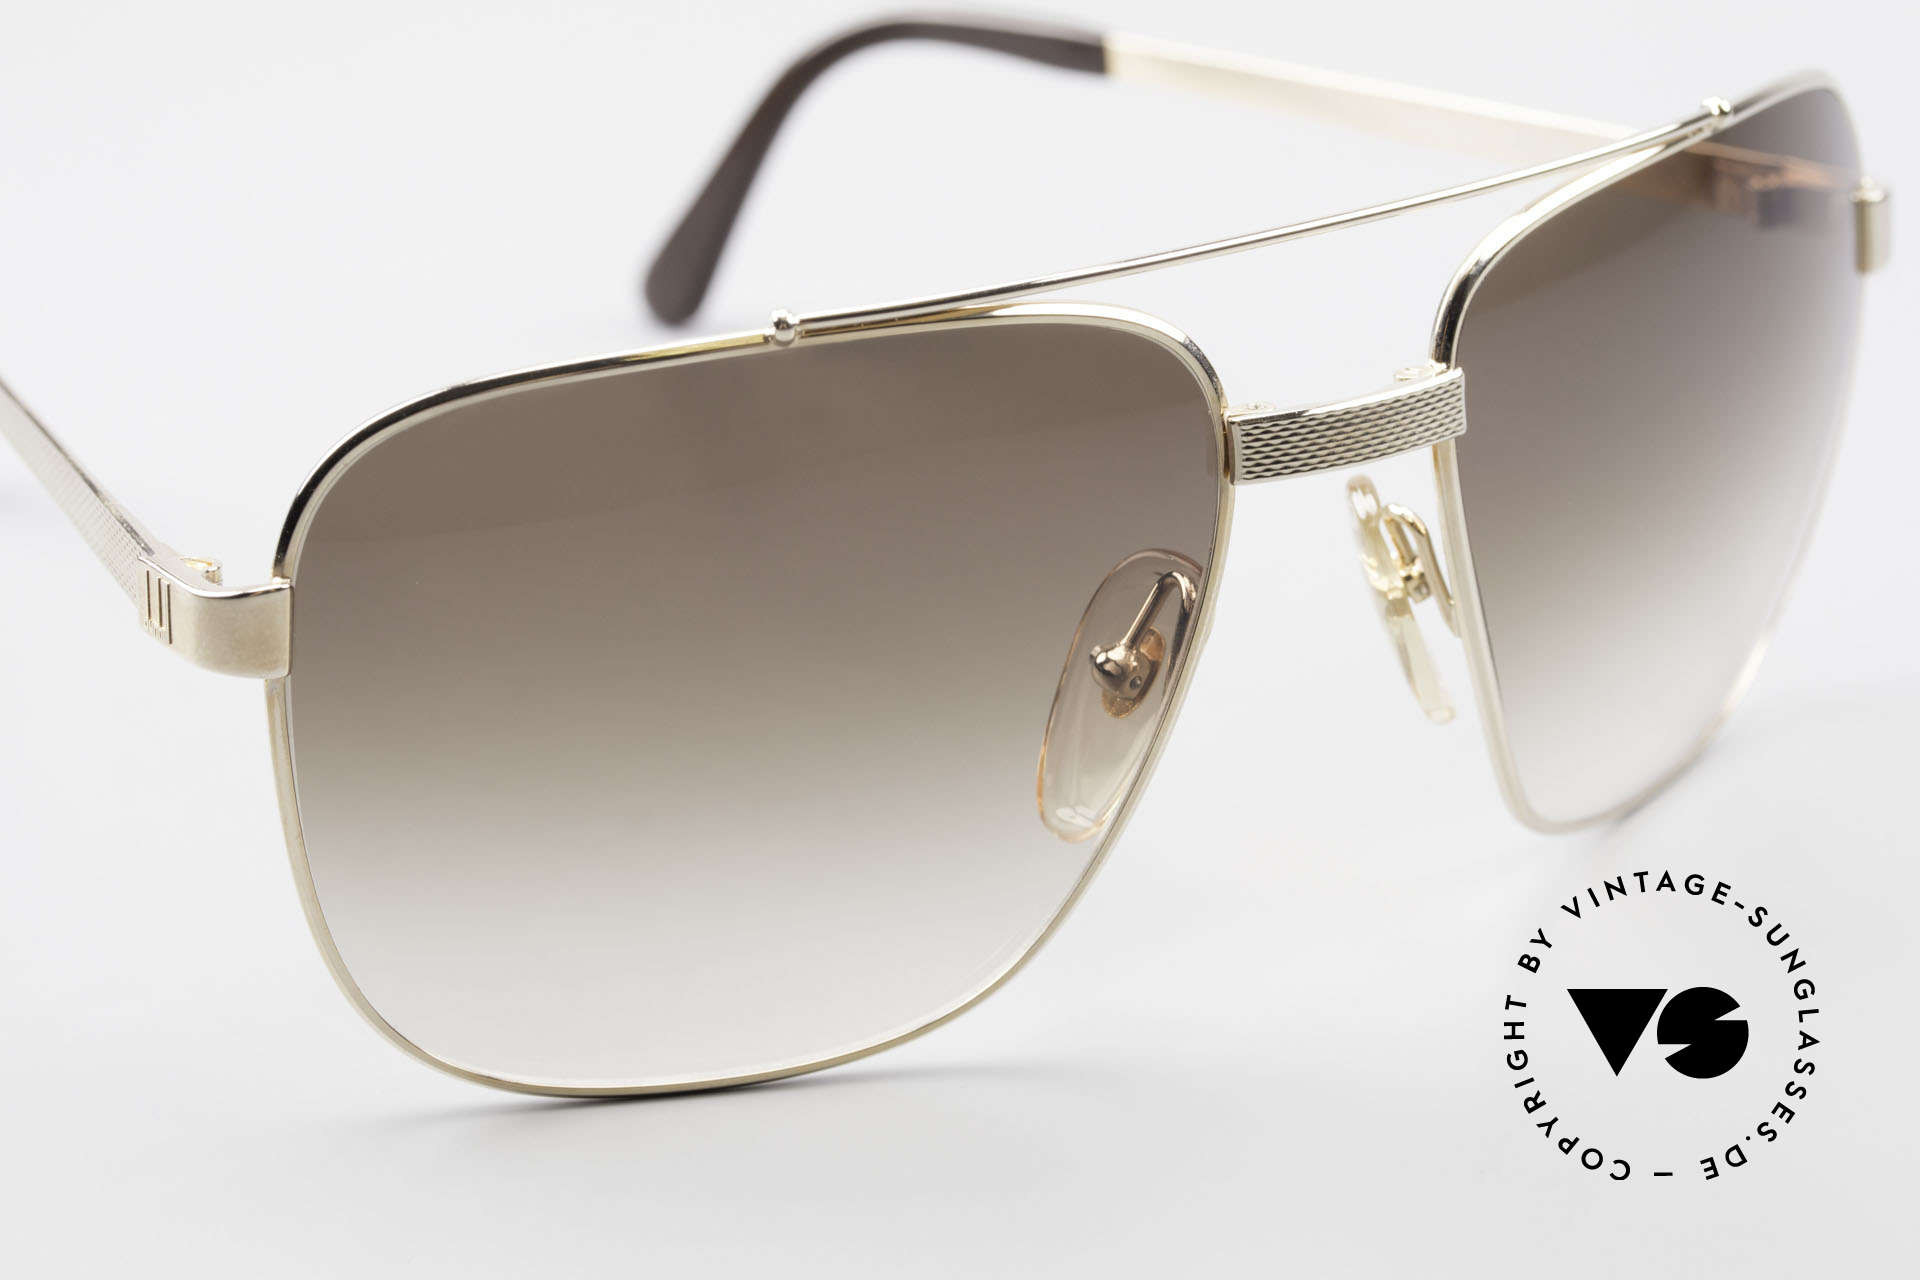 Dunhill 6036 Gold Plated Frame Comfort Fit, unworn (like all our rare old vintage Dunhill sunglasses), Made for Men